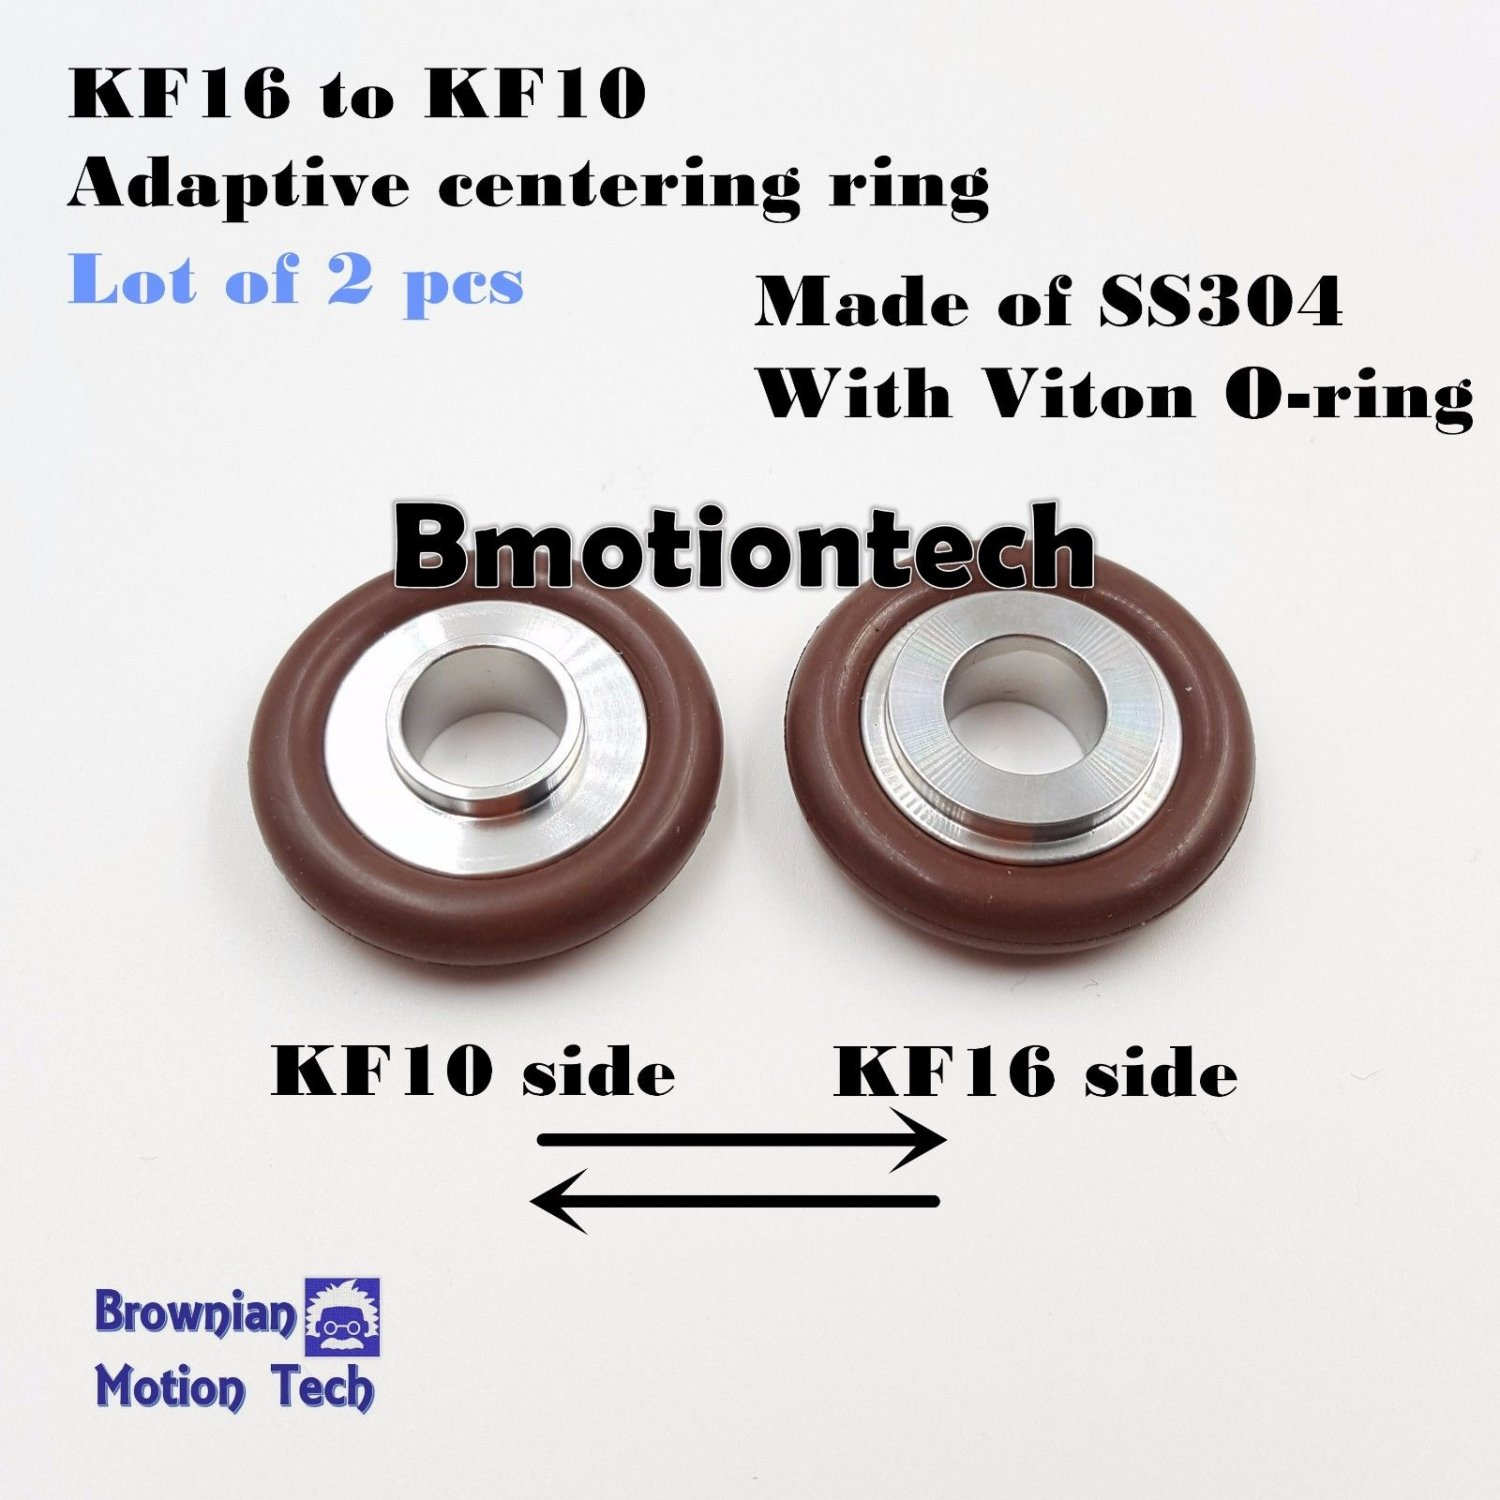 Lot of 2pcs KF16 to KF10 adaptive stainless steel centering Ring w/ viton O-ring